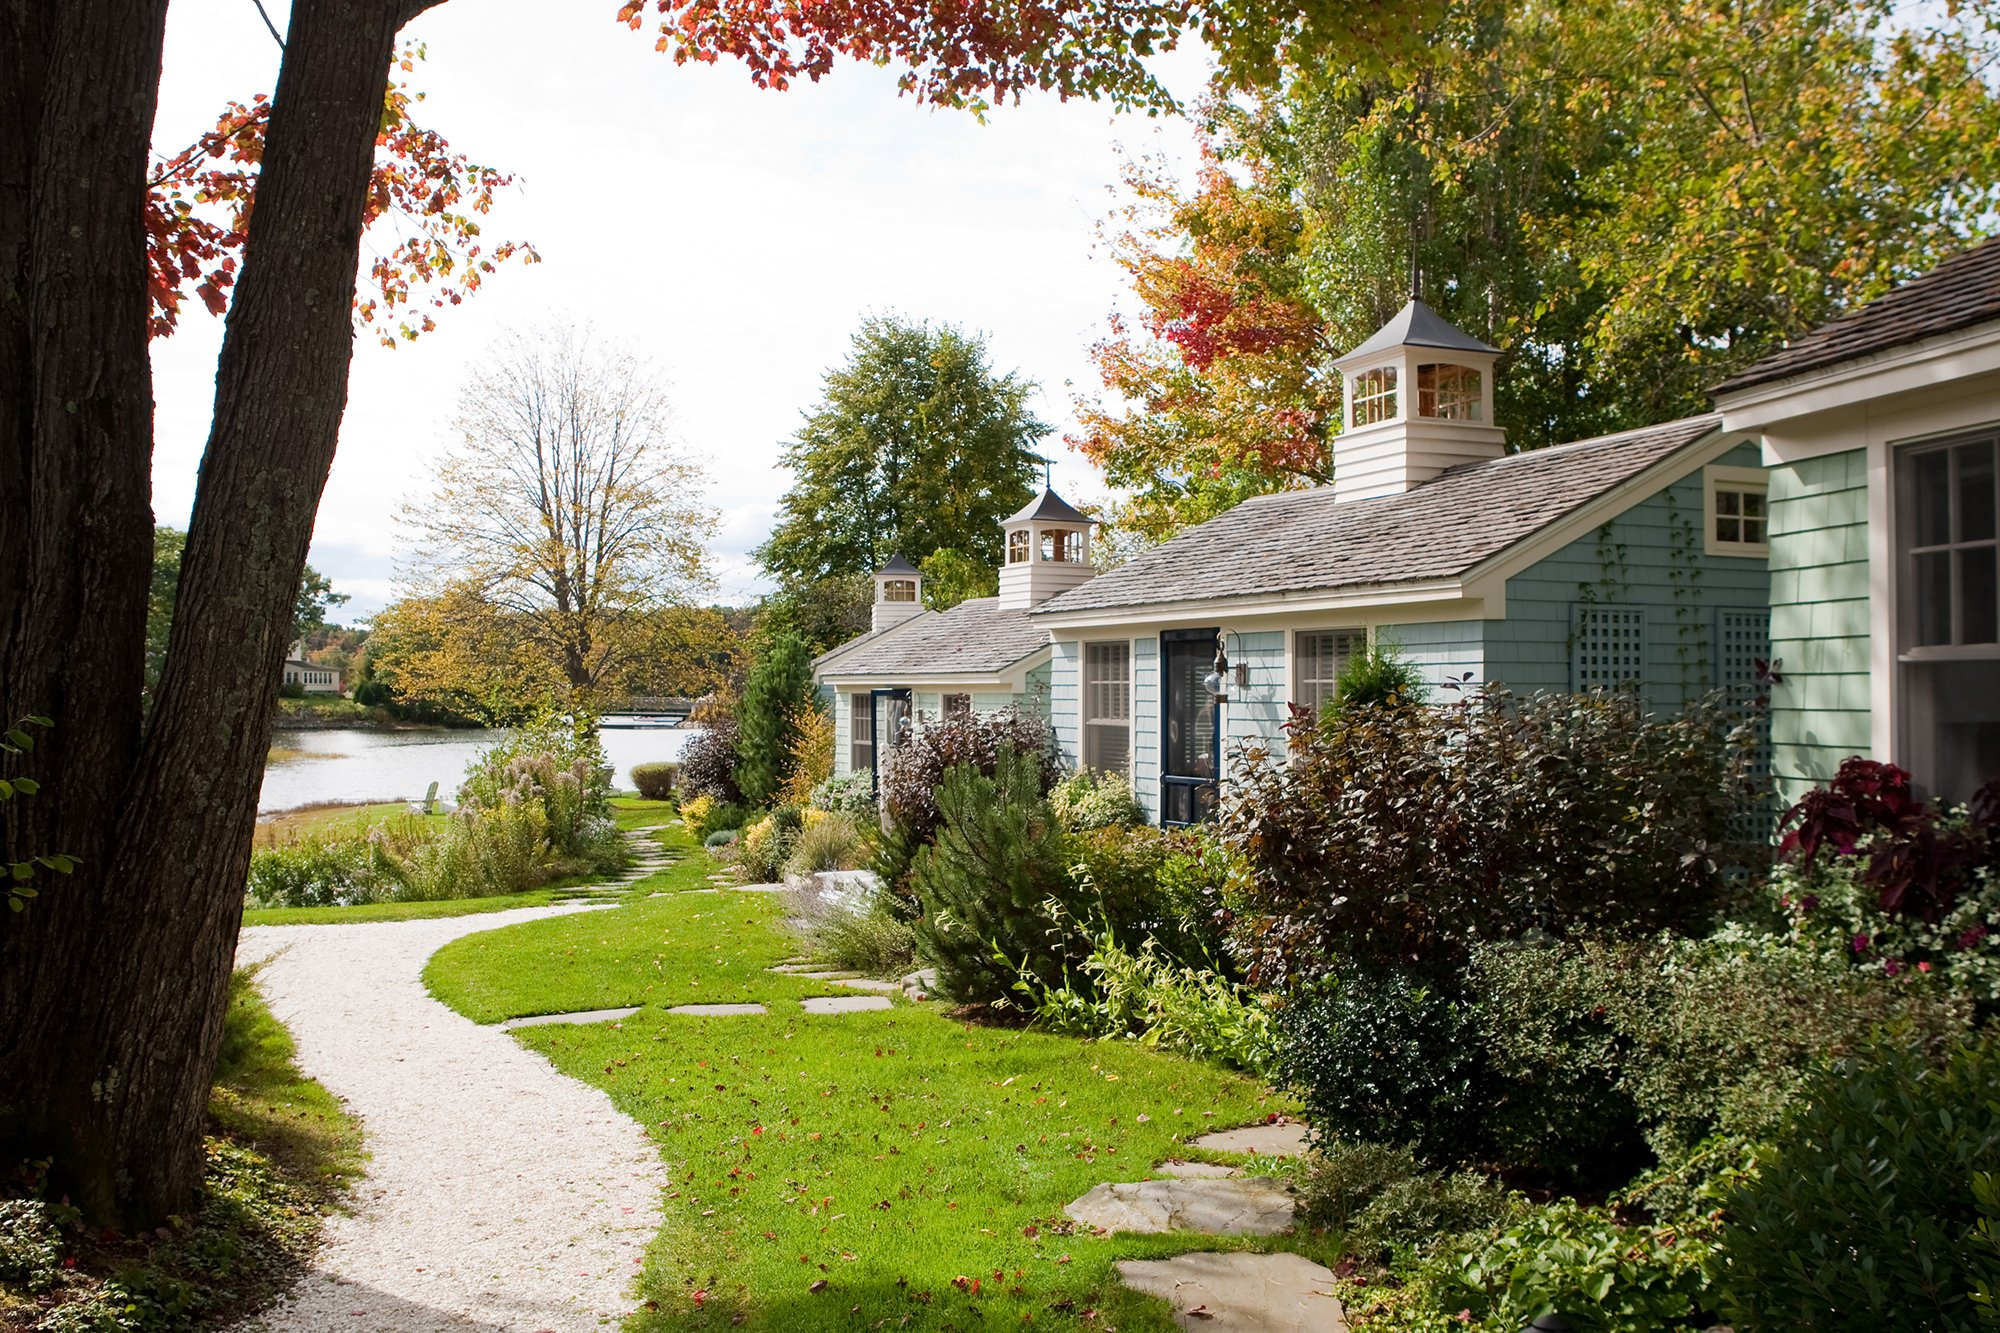 The Cottages at Cabot Cove in Kennebunkport, Maine